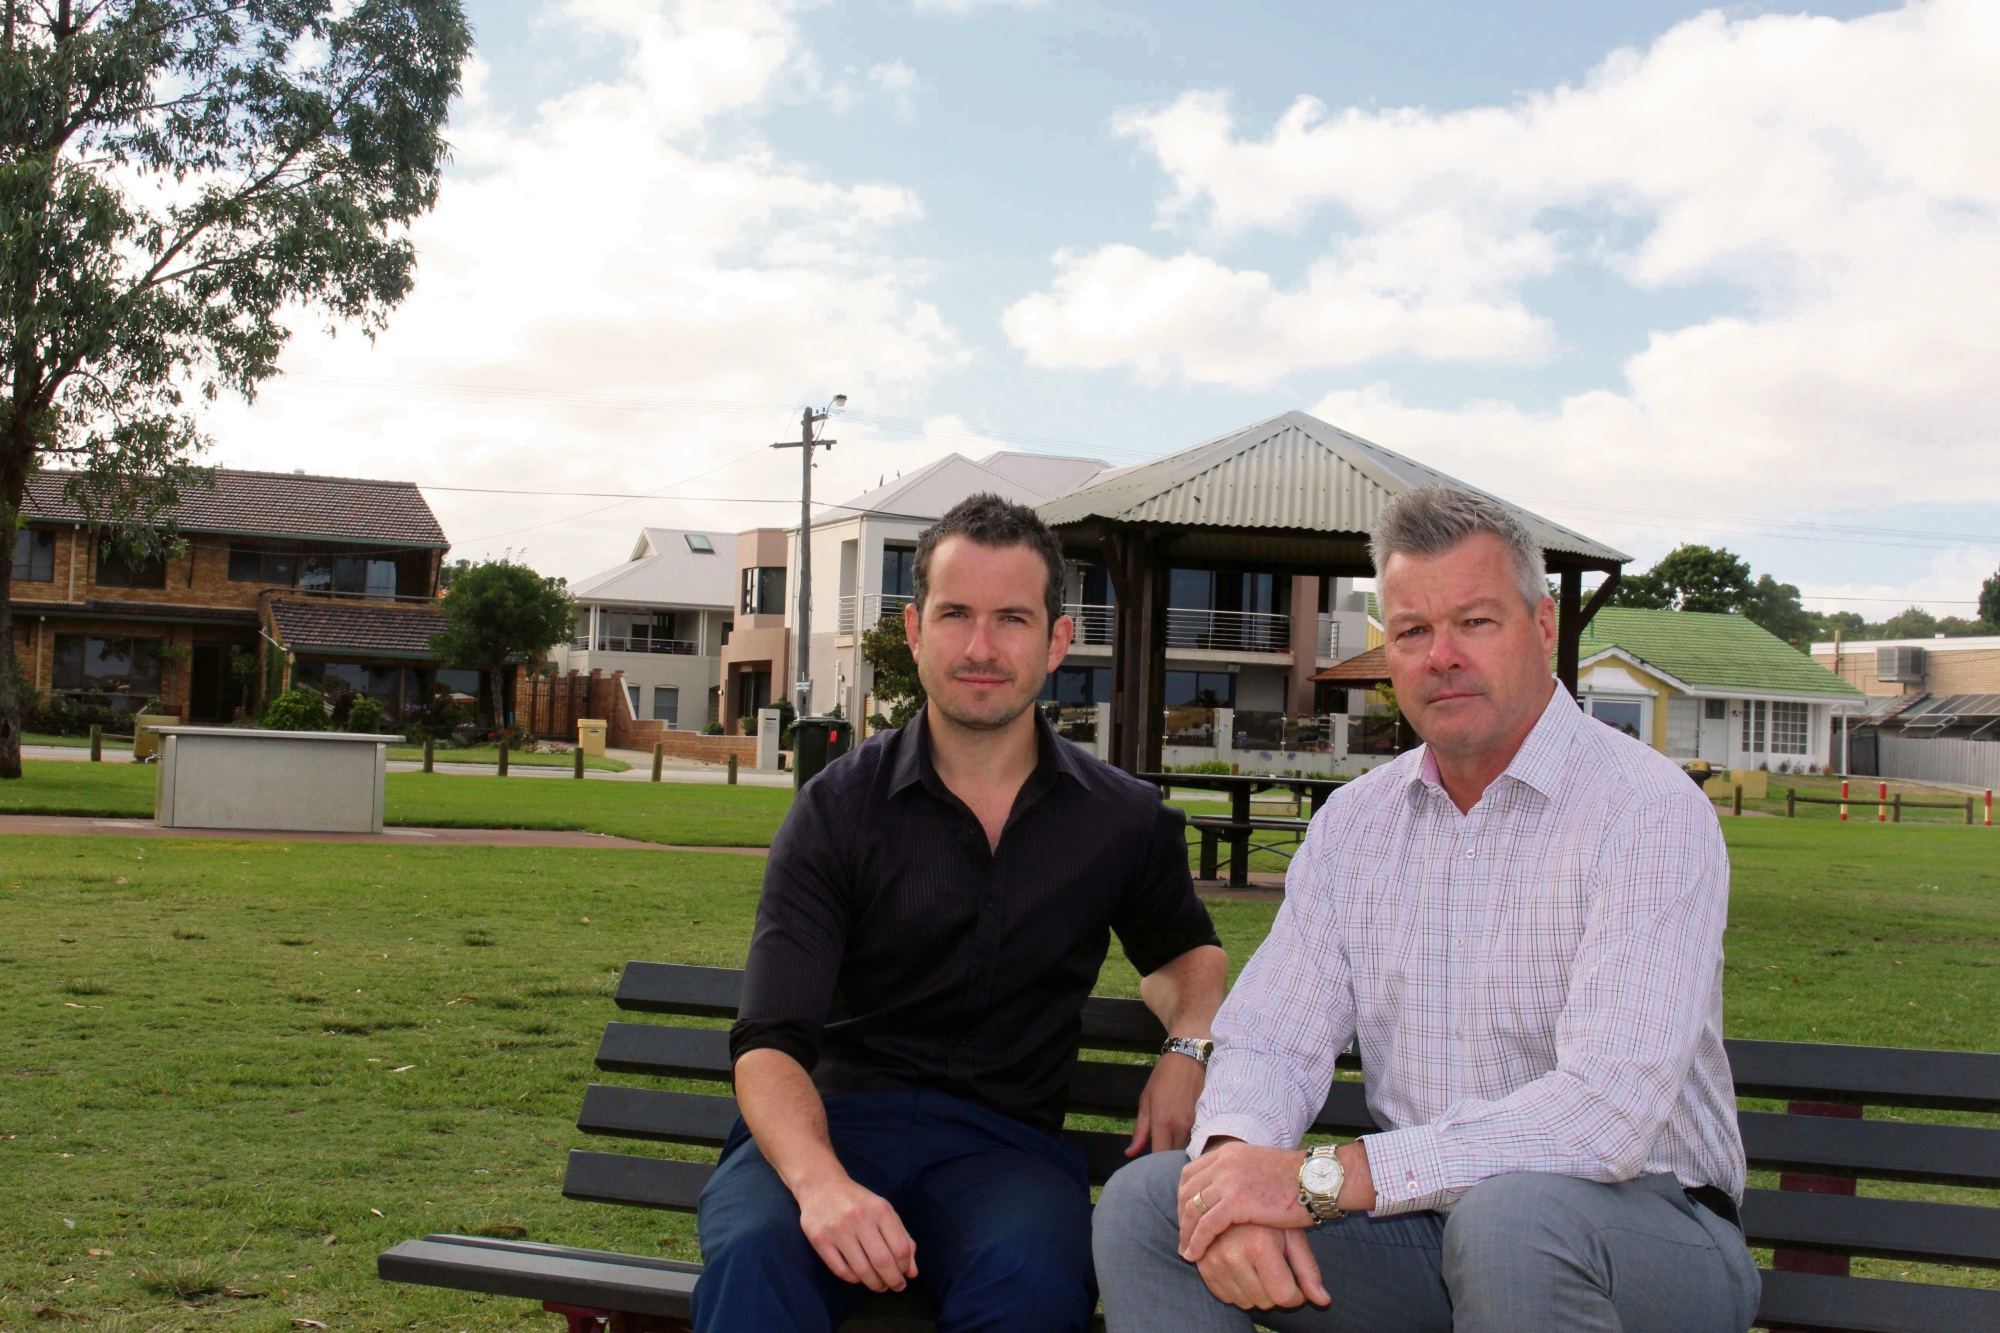 City of Canning rolls out survey to Rossmoyne and Shelley residents about foreshore